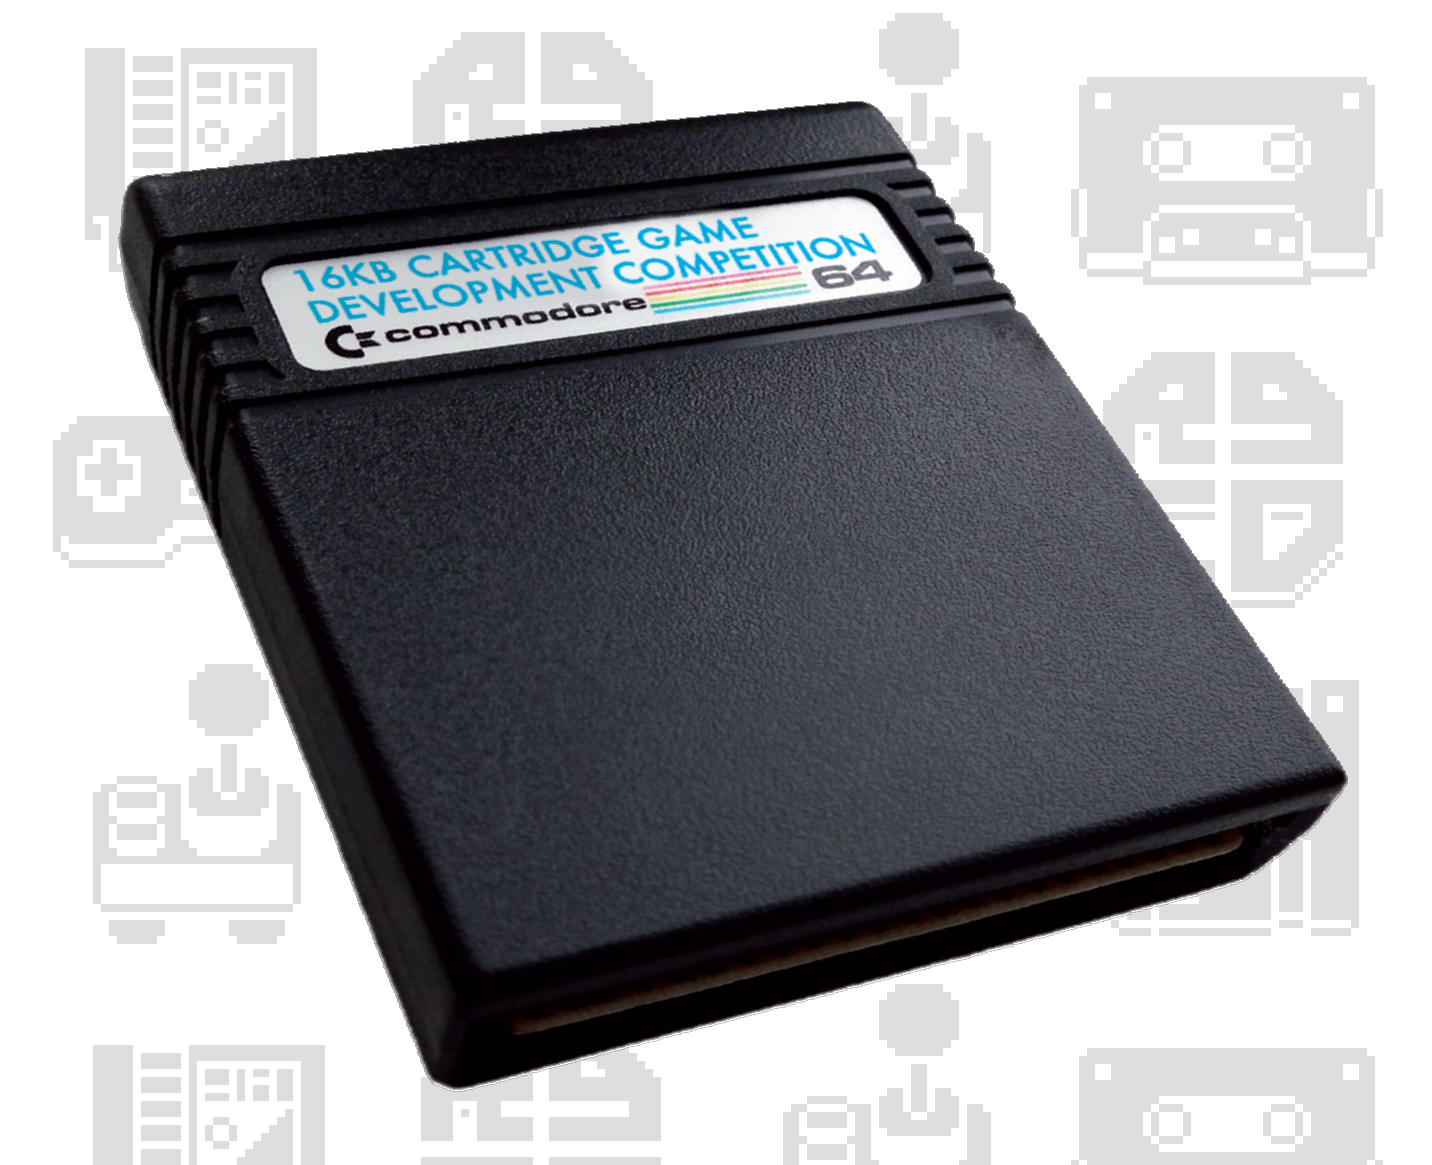 RGCD C64 16KB Cartridge Game Dev Compo - itch io